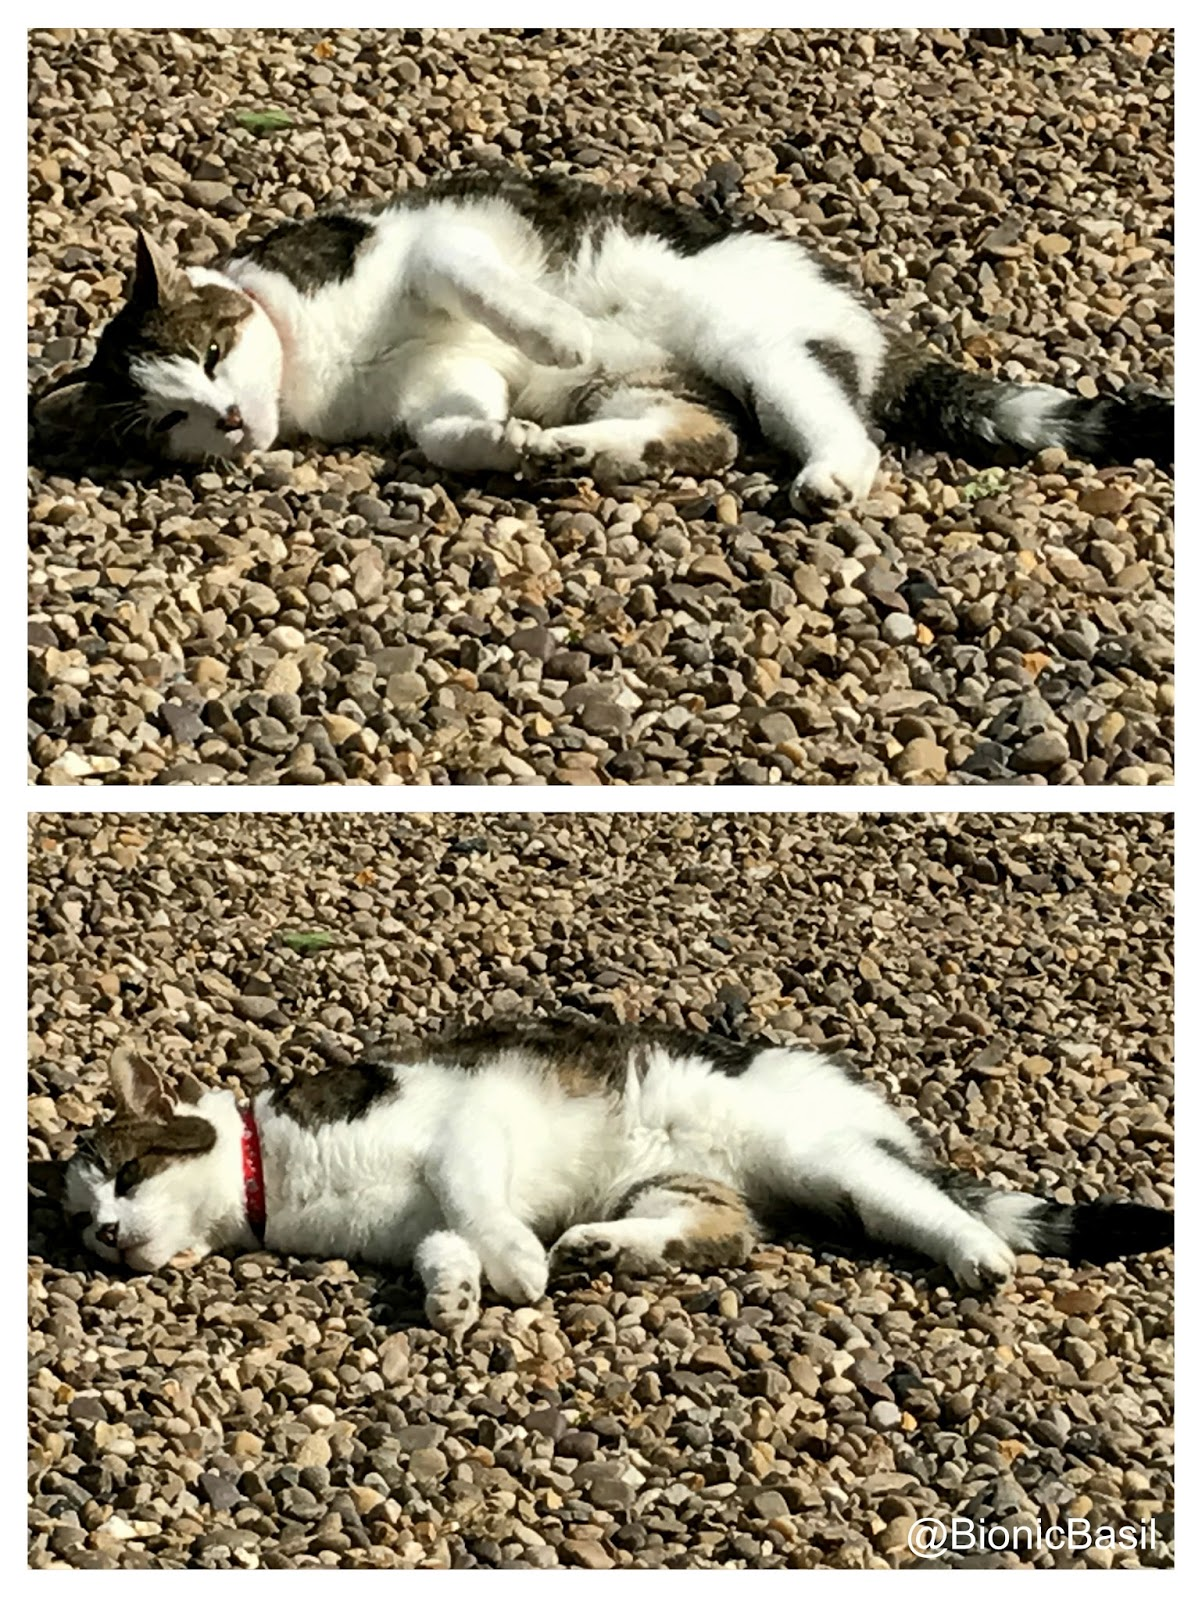 zen colouring cats : So This Week Be Like Me Find Some Sunshine And Just Flop Down As Mew Can See I Ve Got My Oms On And My Zen Harmonies Happening Big Time Mol